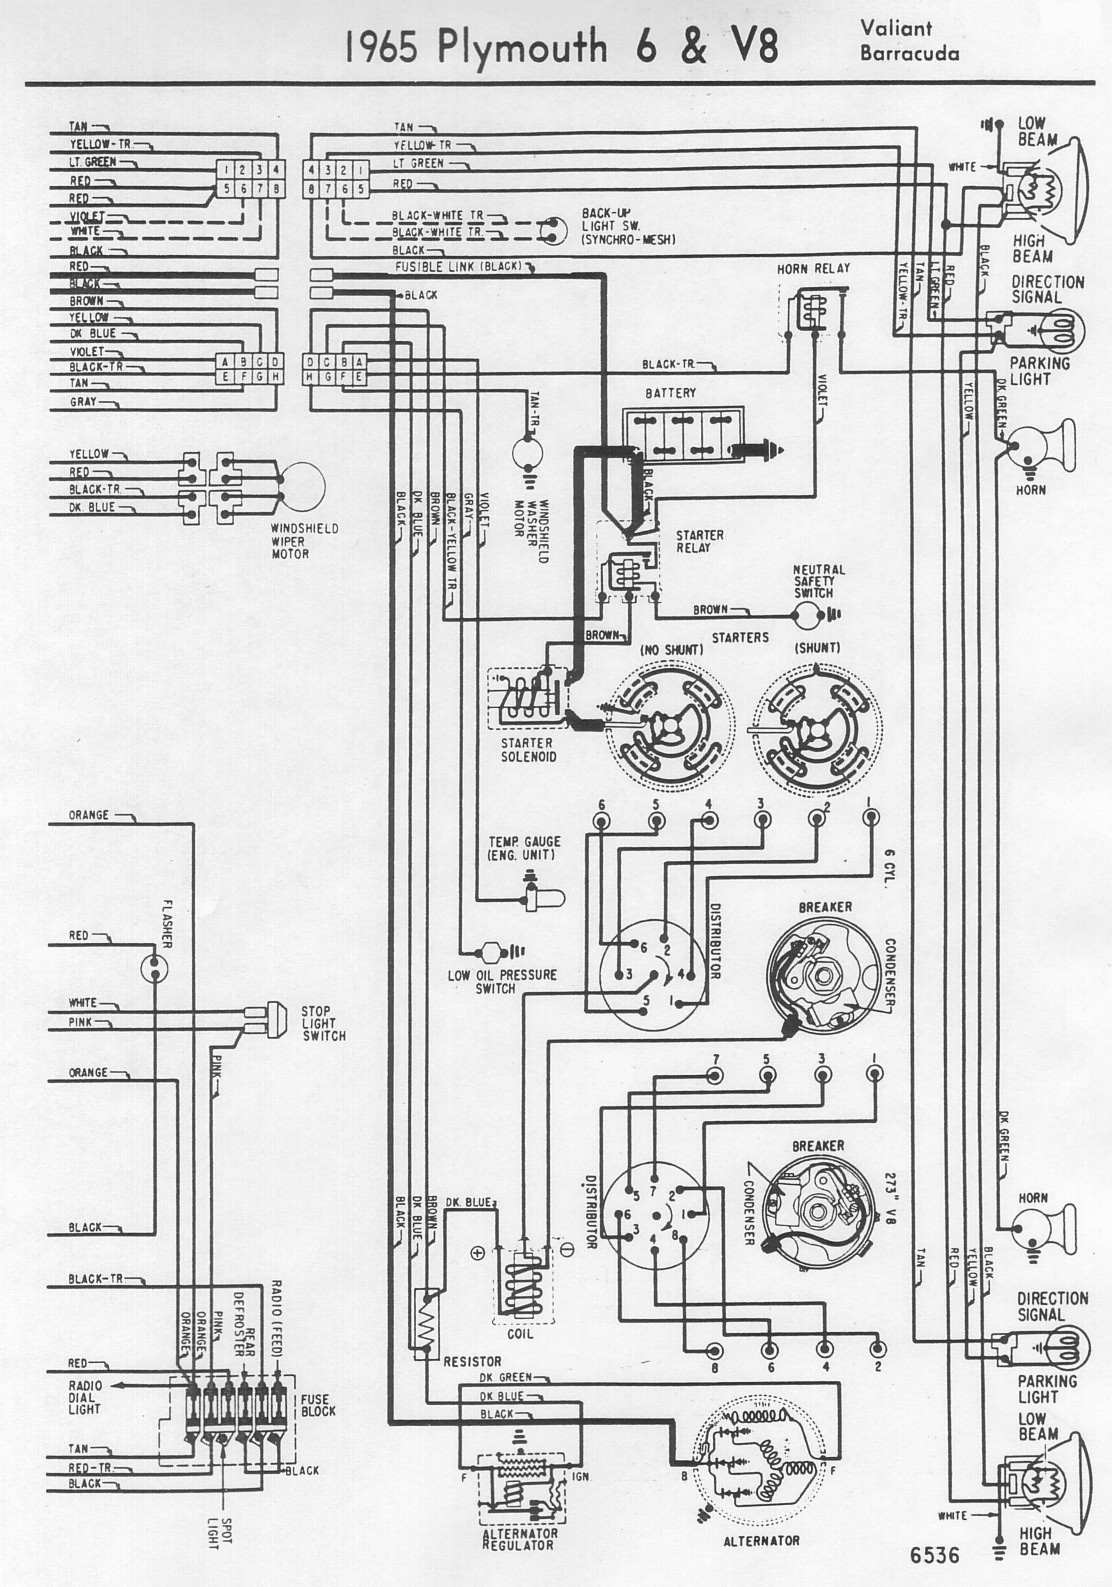 DIAGRAM] Plymouth Barracuda FULL Version HD Quality Wiring Diagram -  IDEAARTGRAFIK.CHEFSCUISINIERSAIN.FRideaartgrafik chefscuisiniersain fr